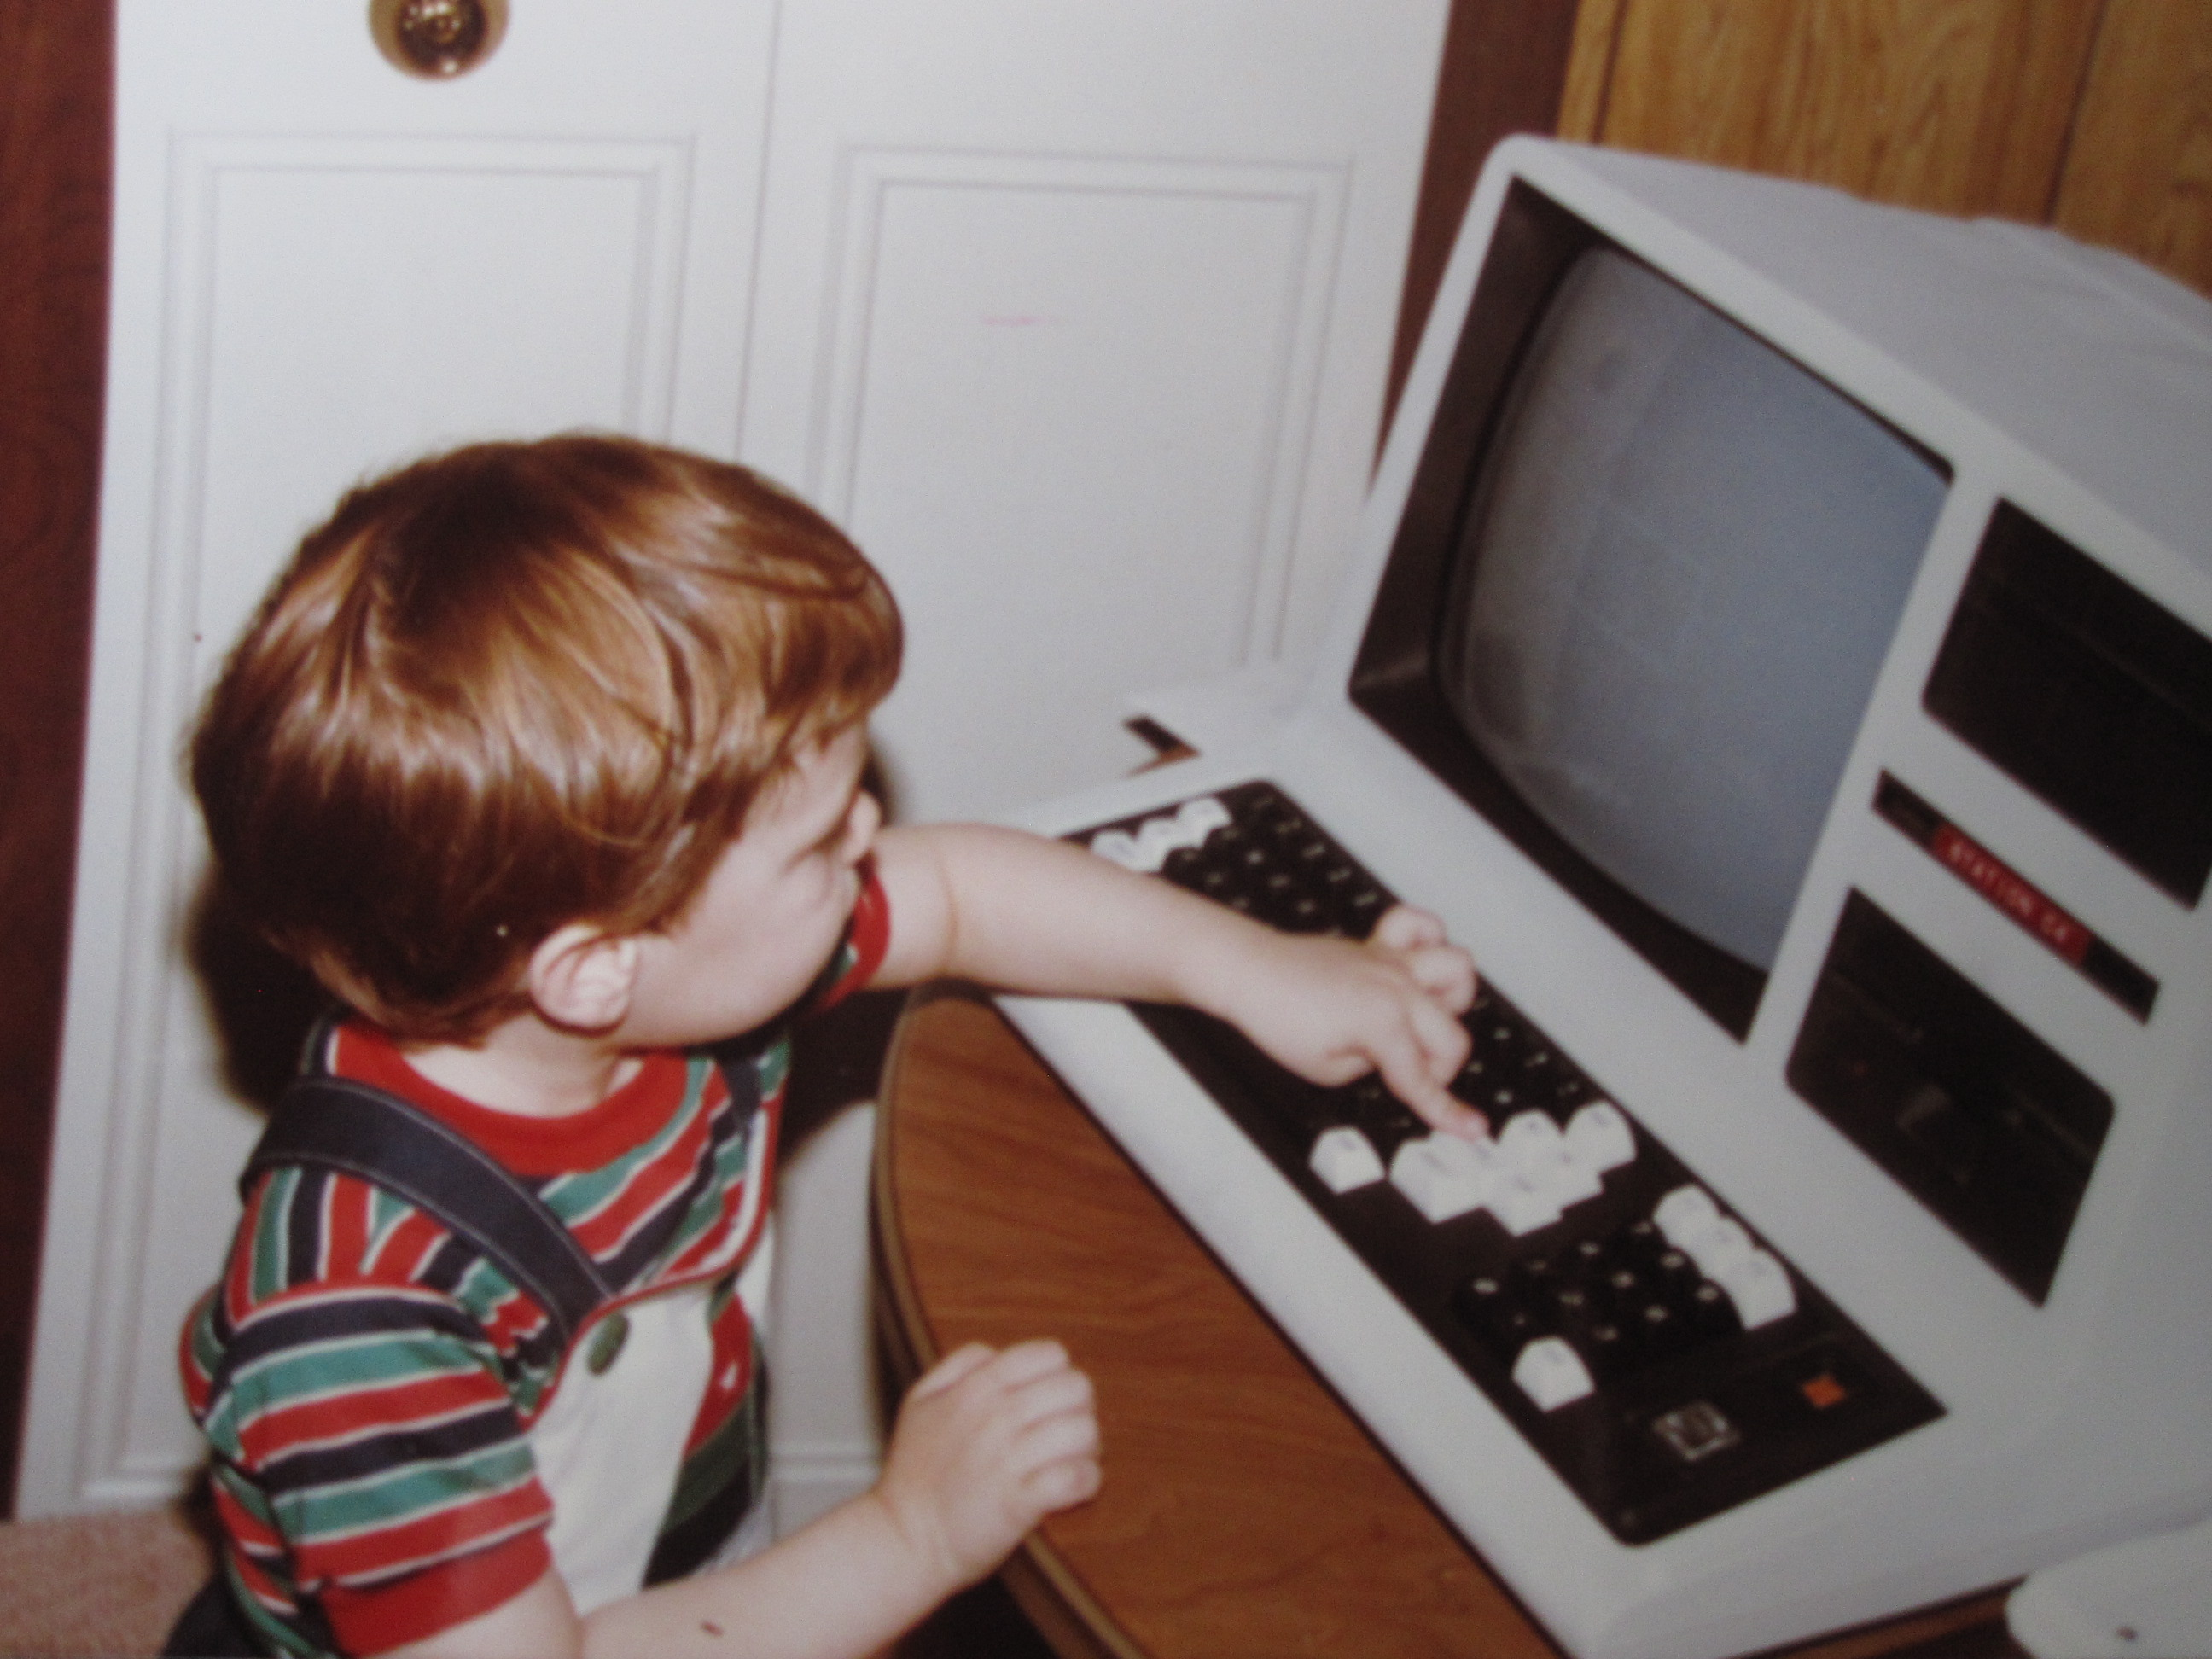 A boy looking at an old computer.